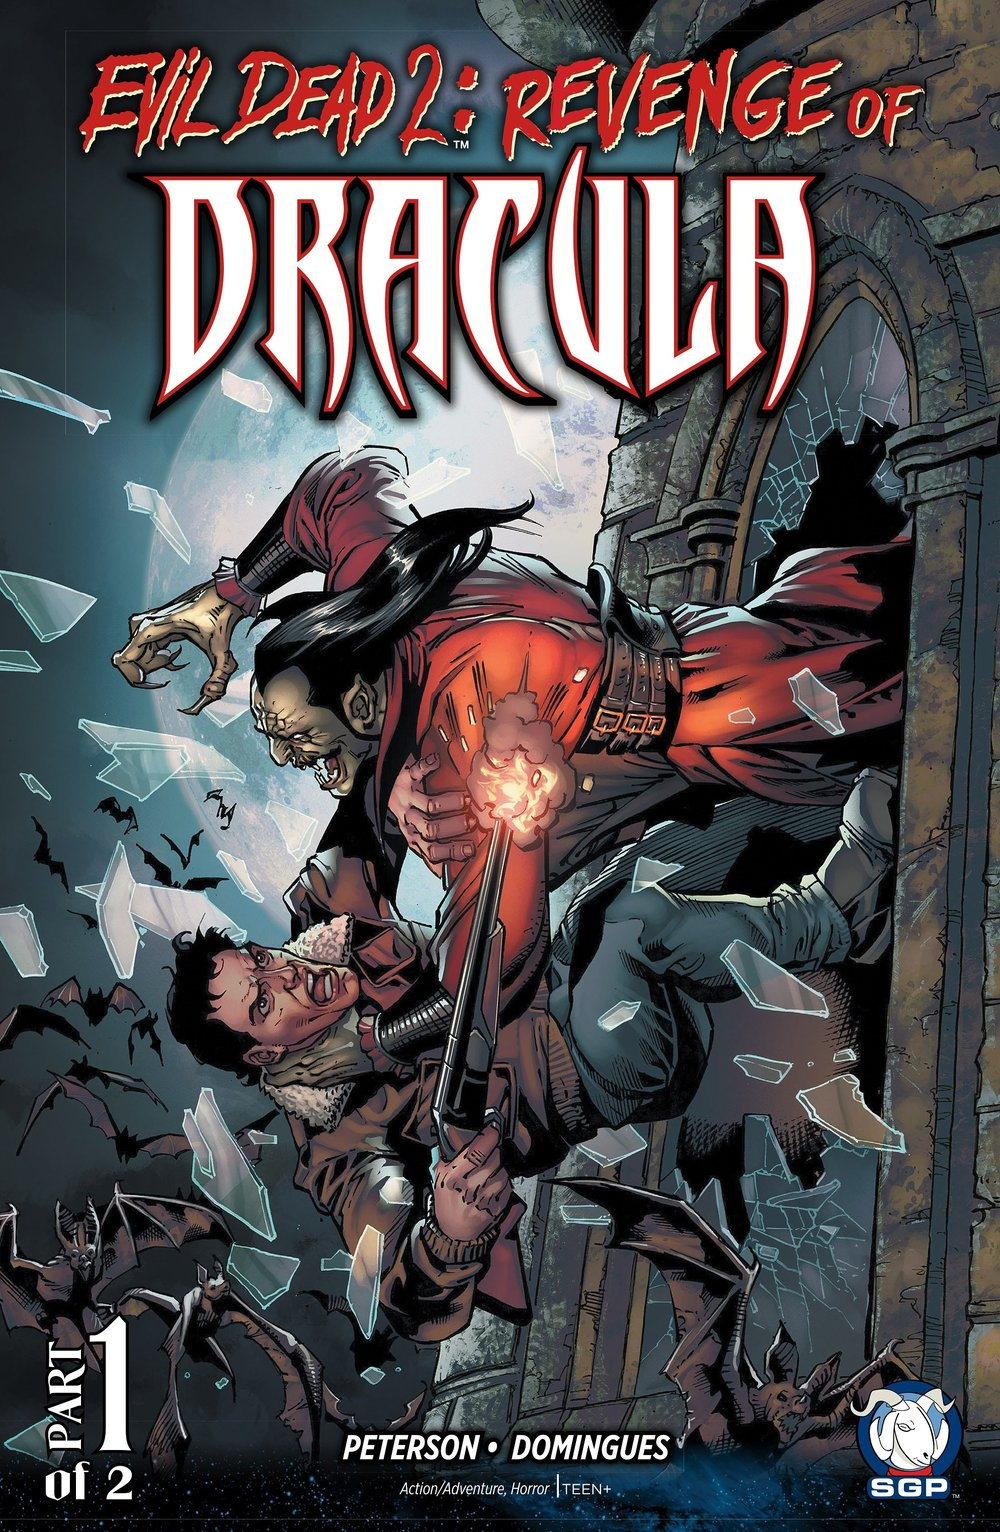 Evil Dead 2 Revenge Of Dracula (2016) #1, cover penciled by Yvel Guichet and inked by Joe Rubinstein.